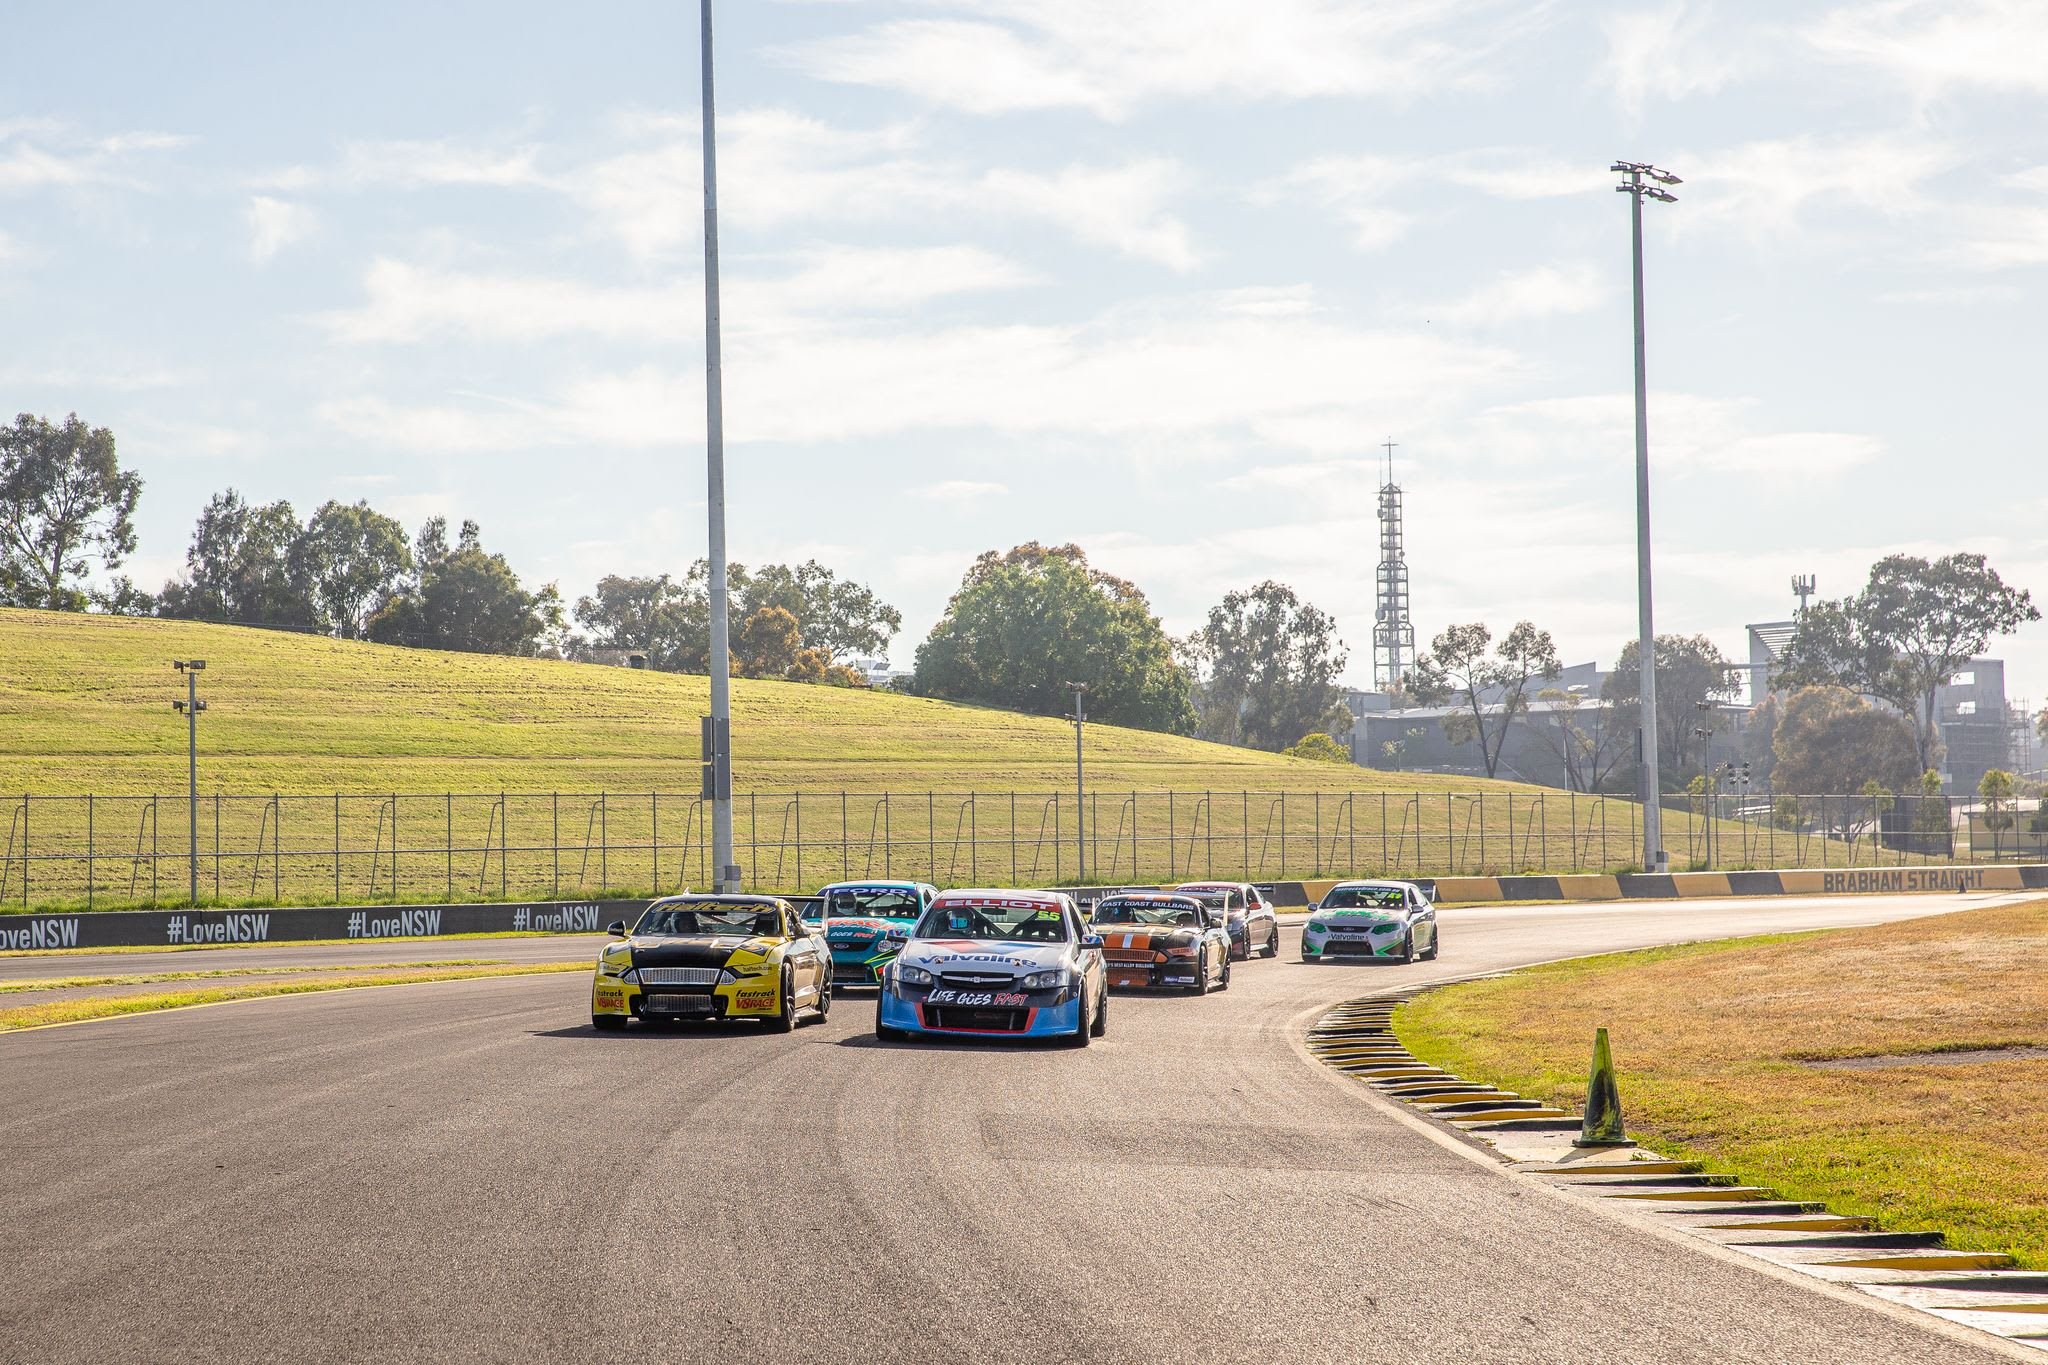 V8 Race Car 6 Lap Drive - Barbagallo, Perth